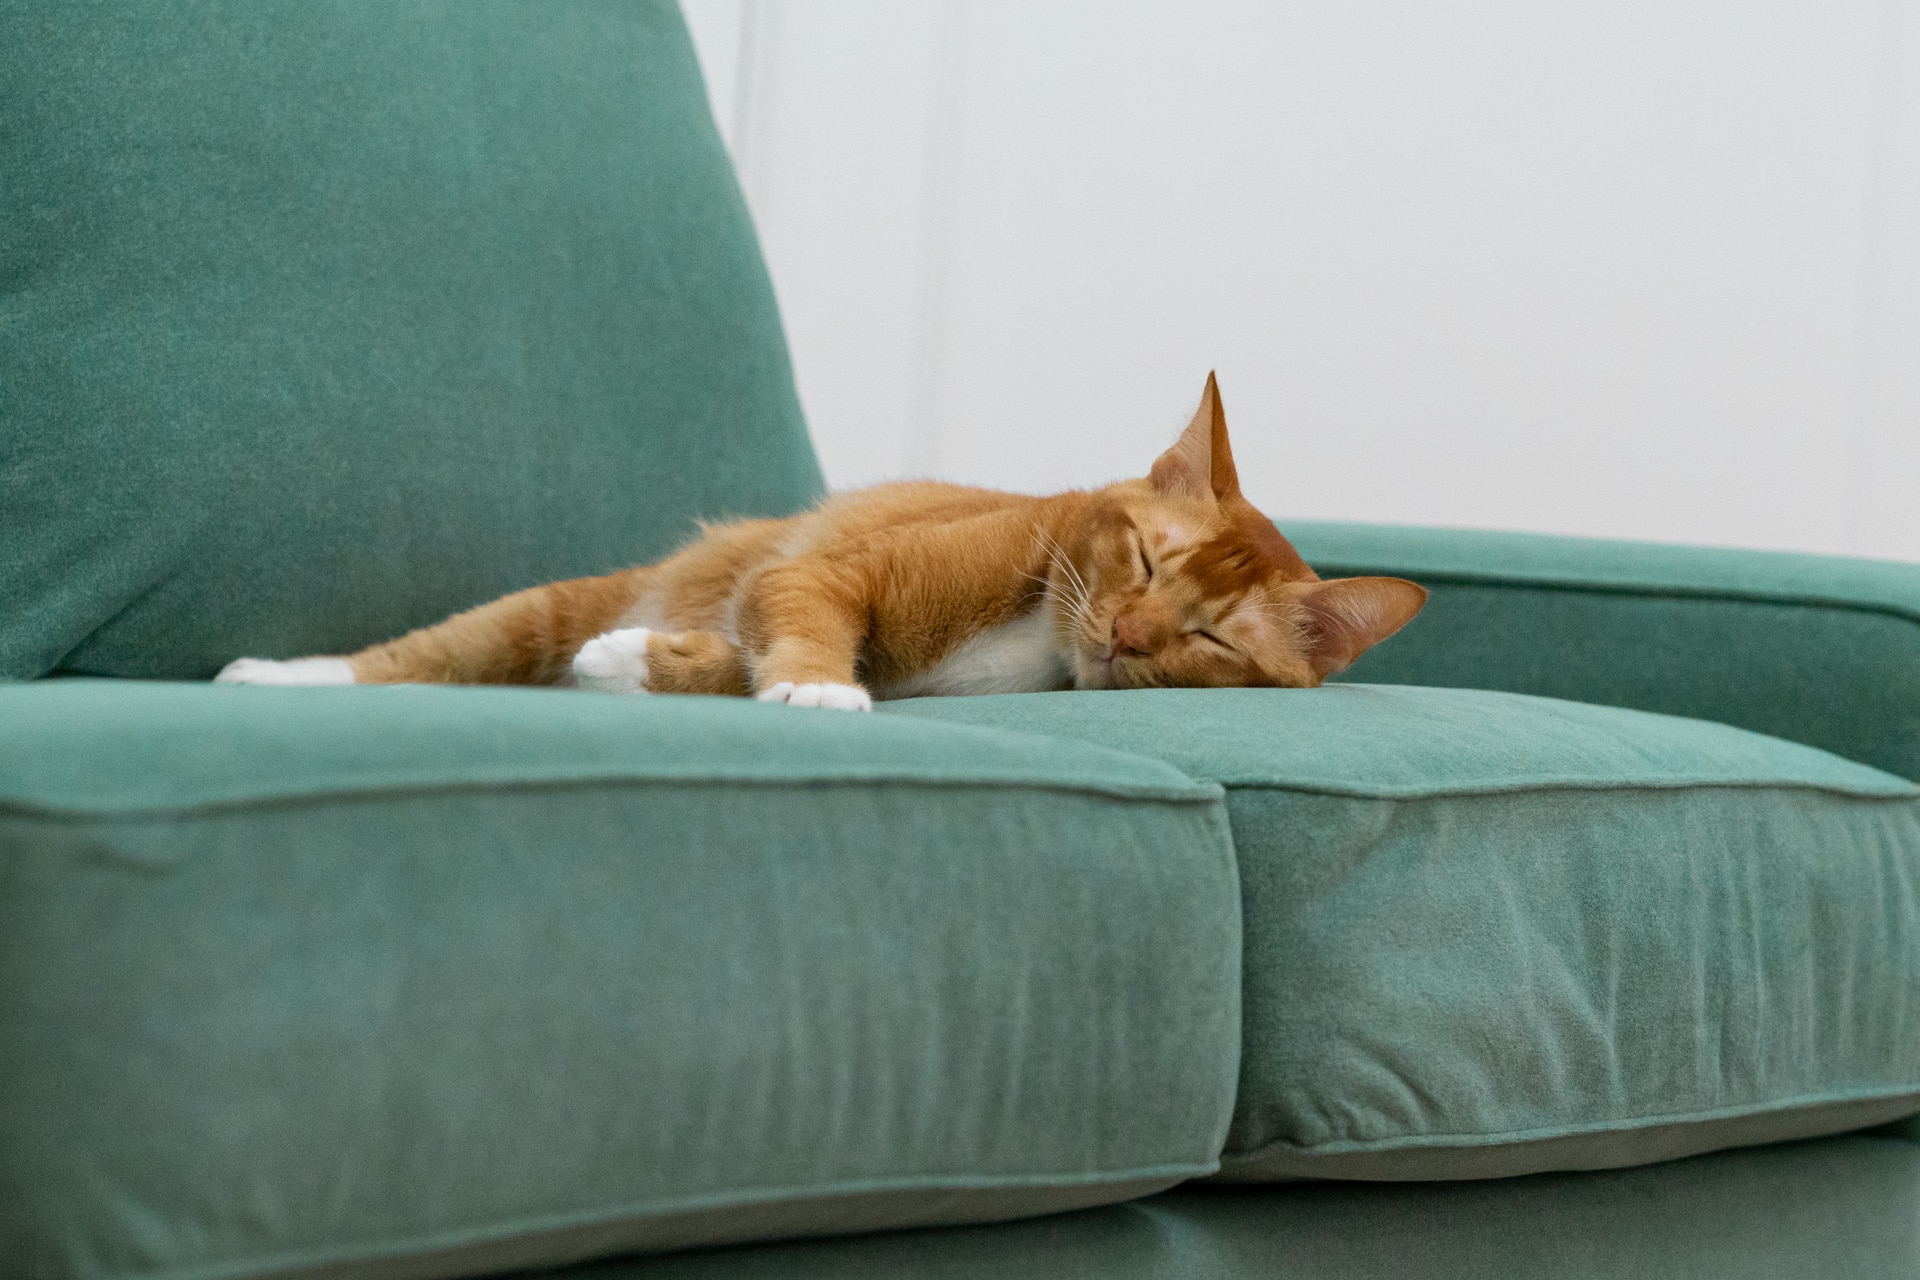 the cat proof couch isn't human proof